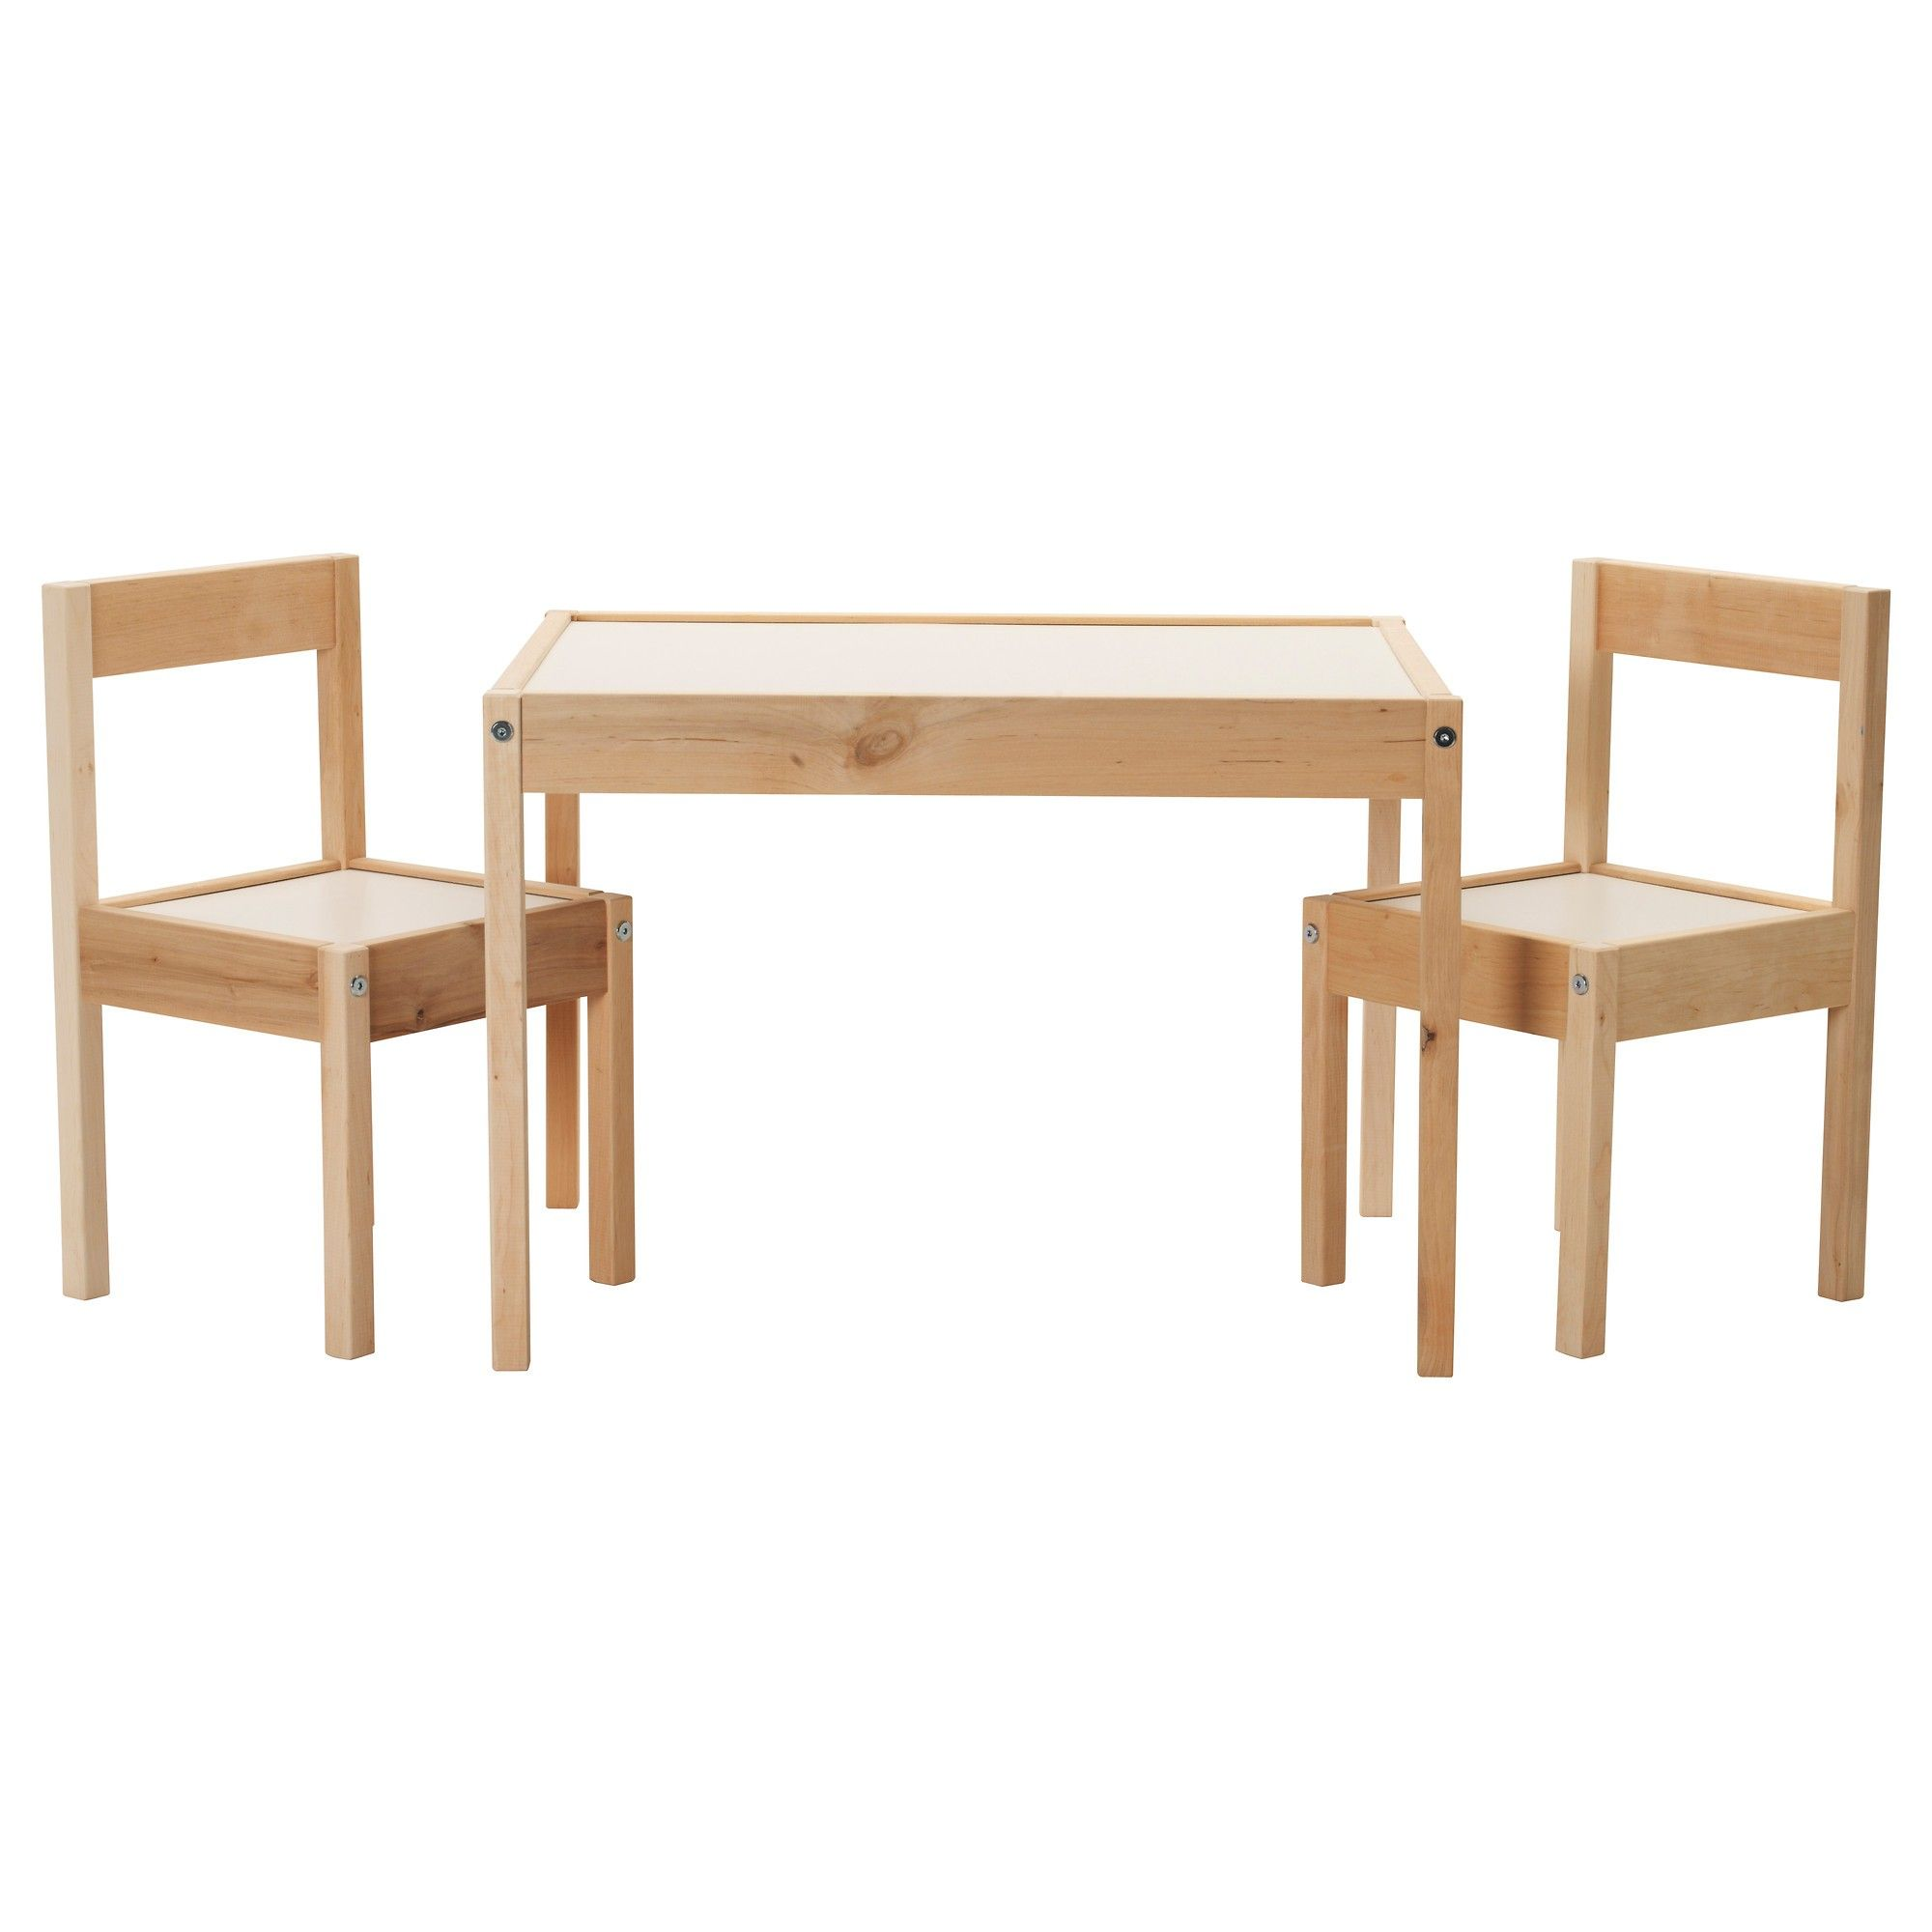 Activity Table And Chairs For Toddlers Chair And Table Kids Child S Chair And Table Childr Ikea Table And Chairs Ikea Childrens Table Kids Table And Chairs